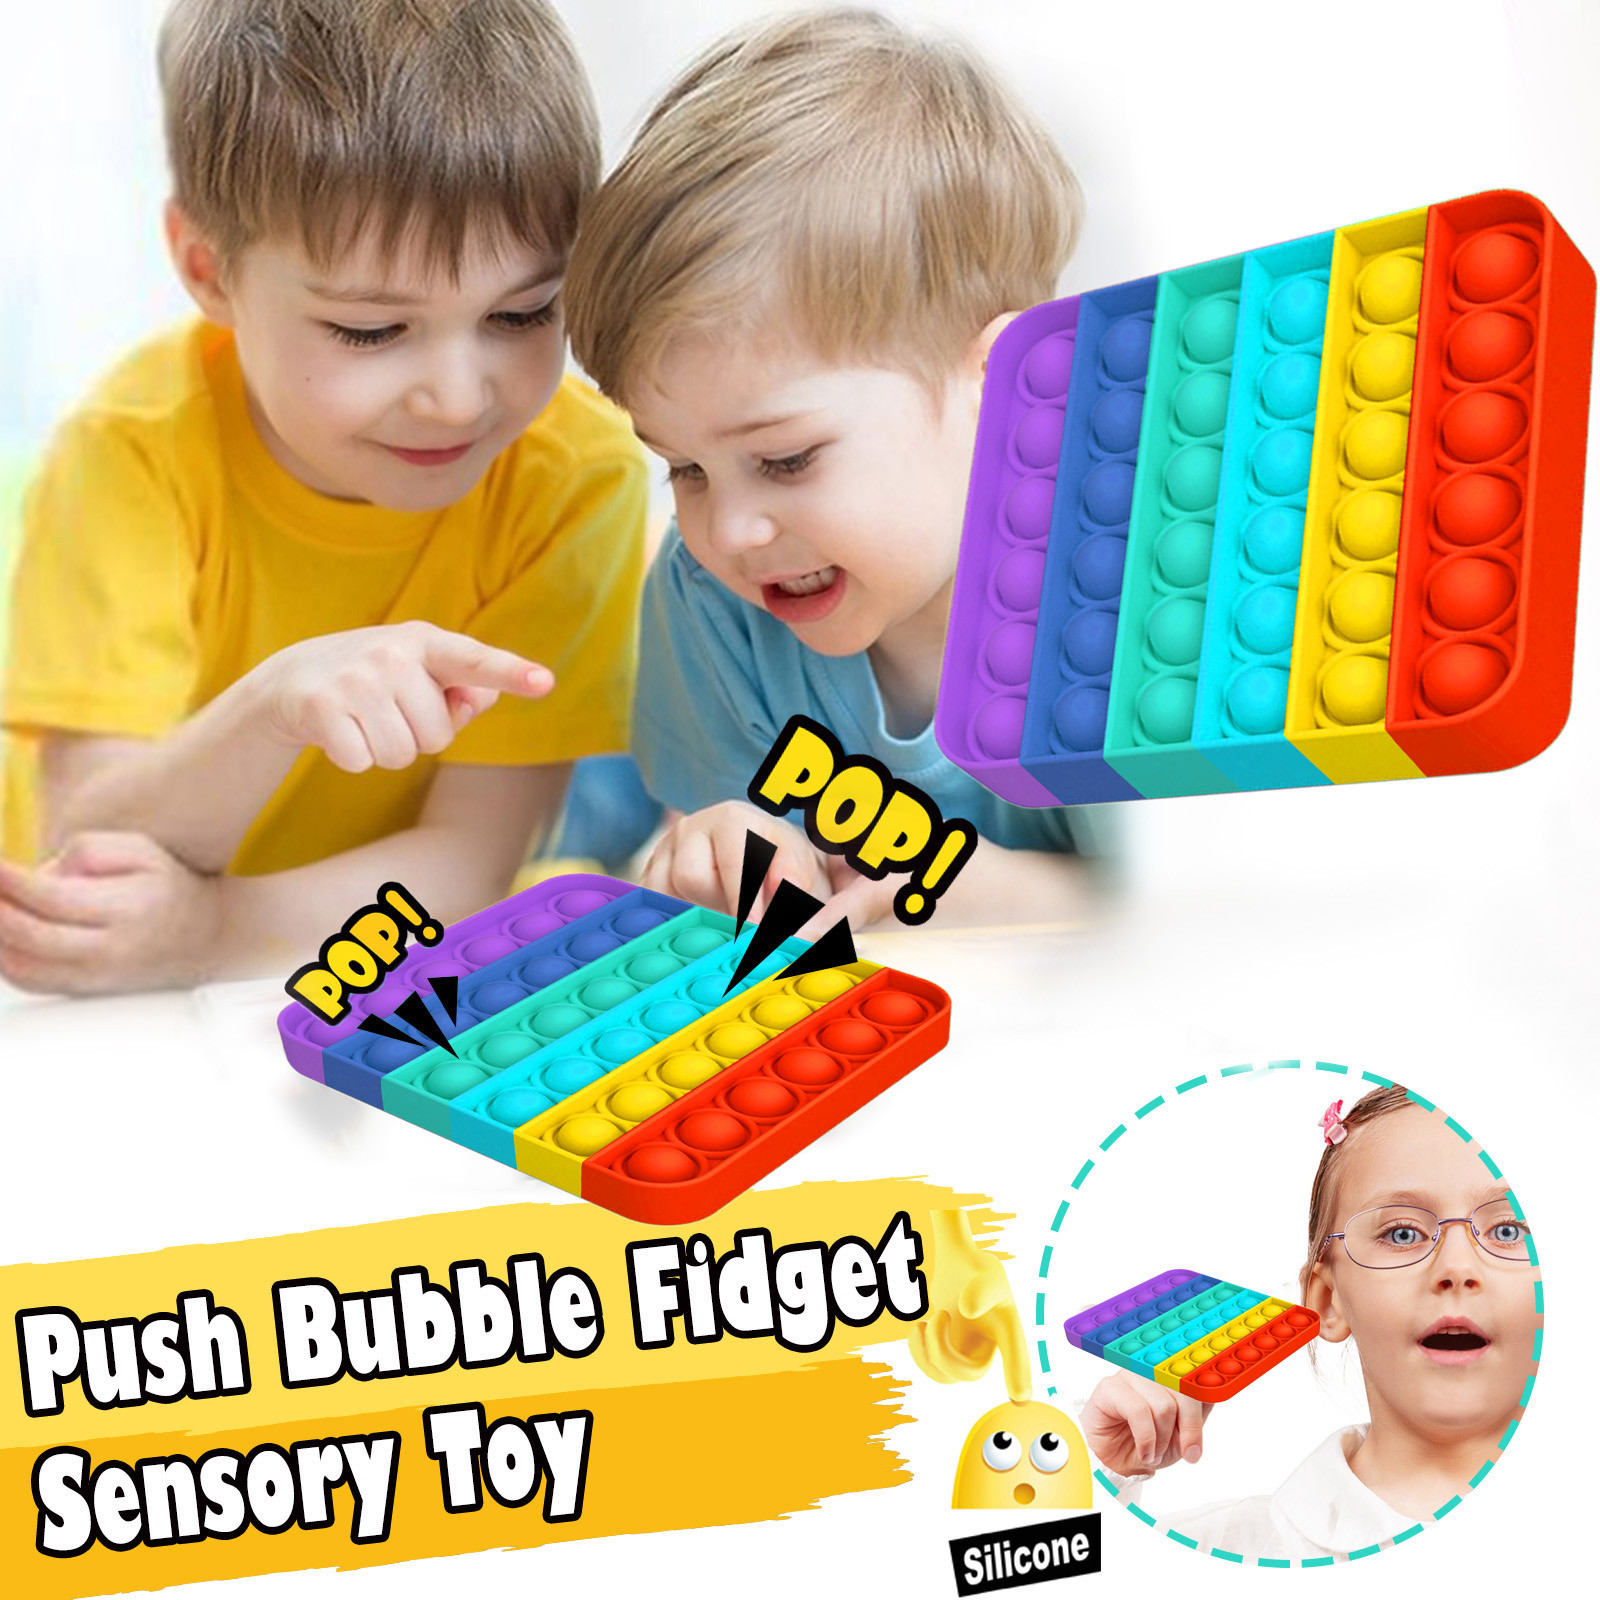 Fidget-Sensory-Toy Game-Stress Bubble Pops Squishy-Pops Rainbow-Push Relief Special Needs img3